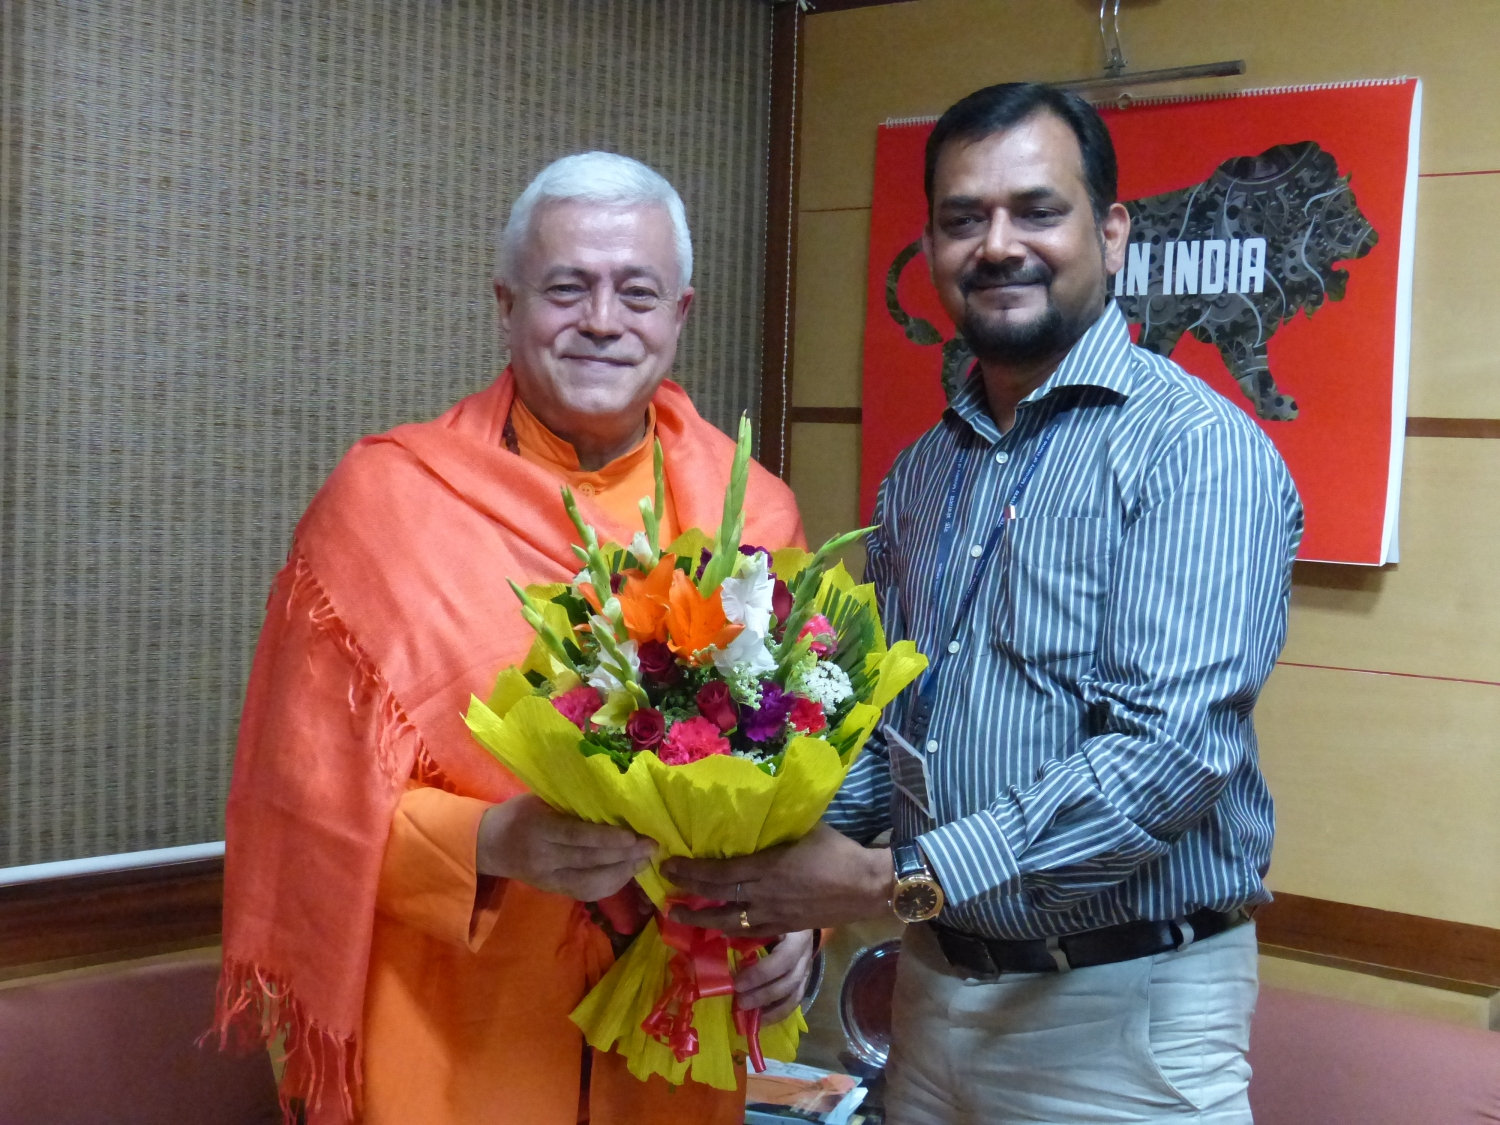 Con Dr. Ravi P. Singh, Secretario General del Quality Council of India - New Dillí